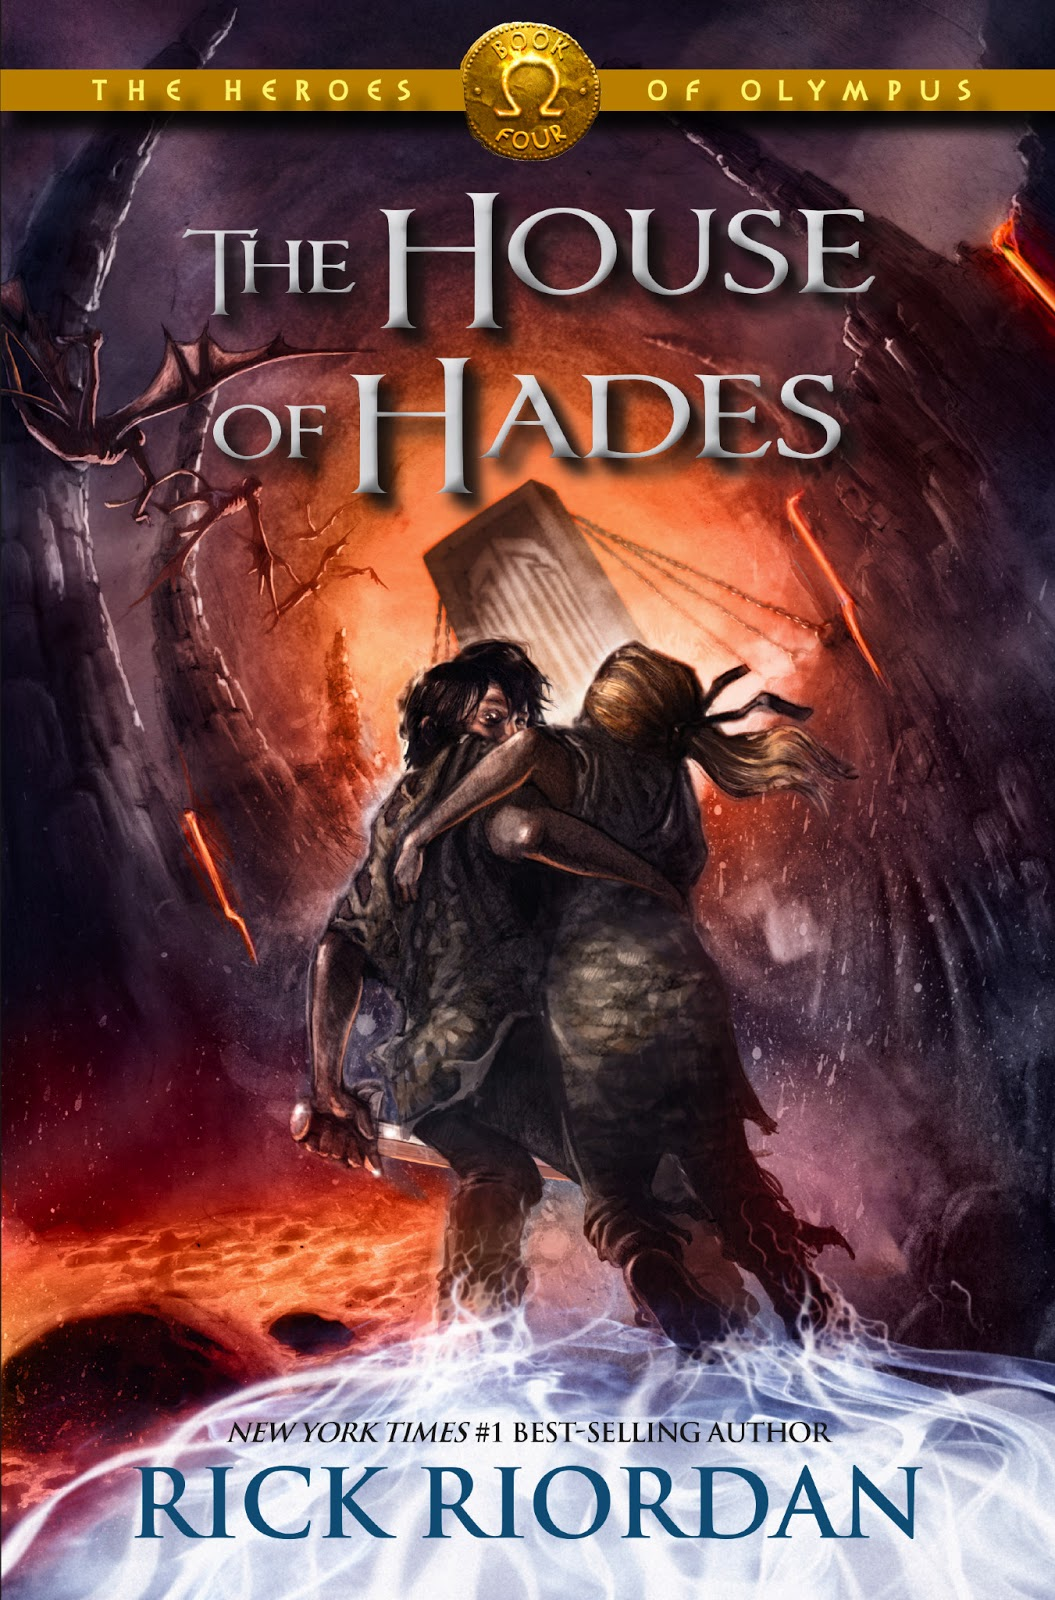 Portada de The House of Hades (La Casa de Hades)